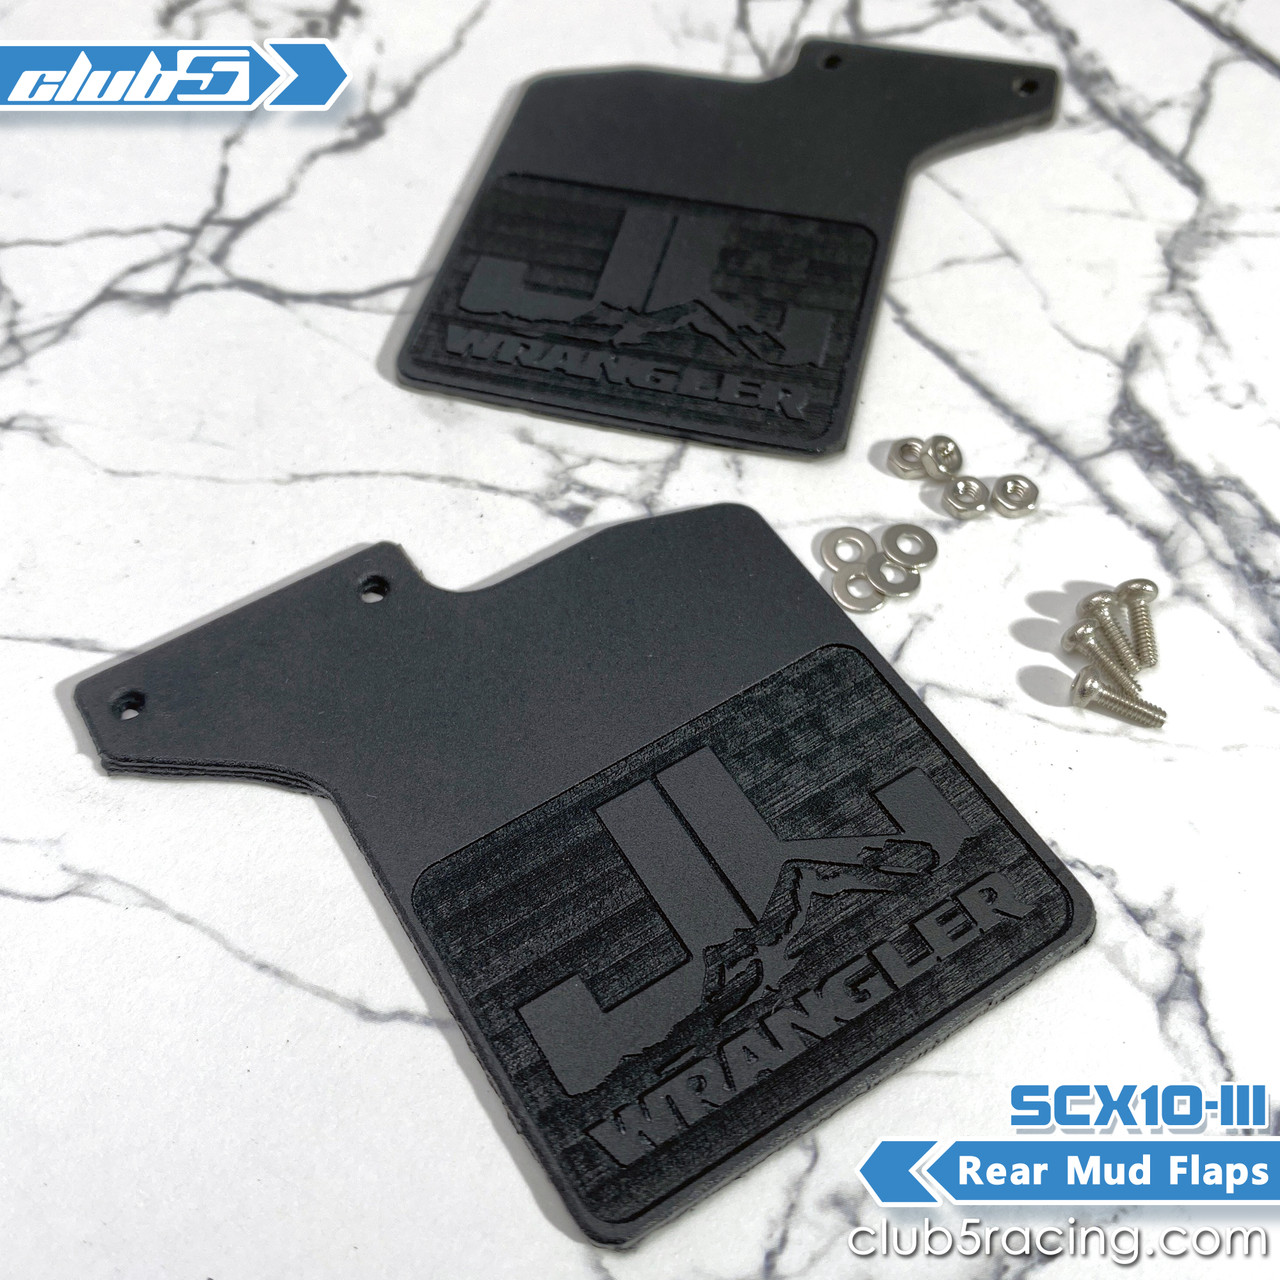 Rear Mud Flaps for SCX10 III Jeep JL Wrangler (A)